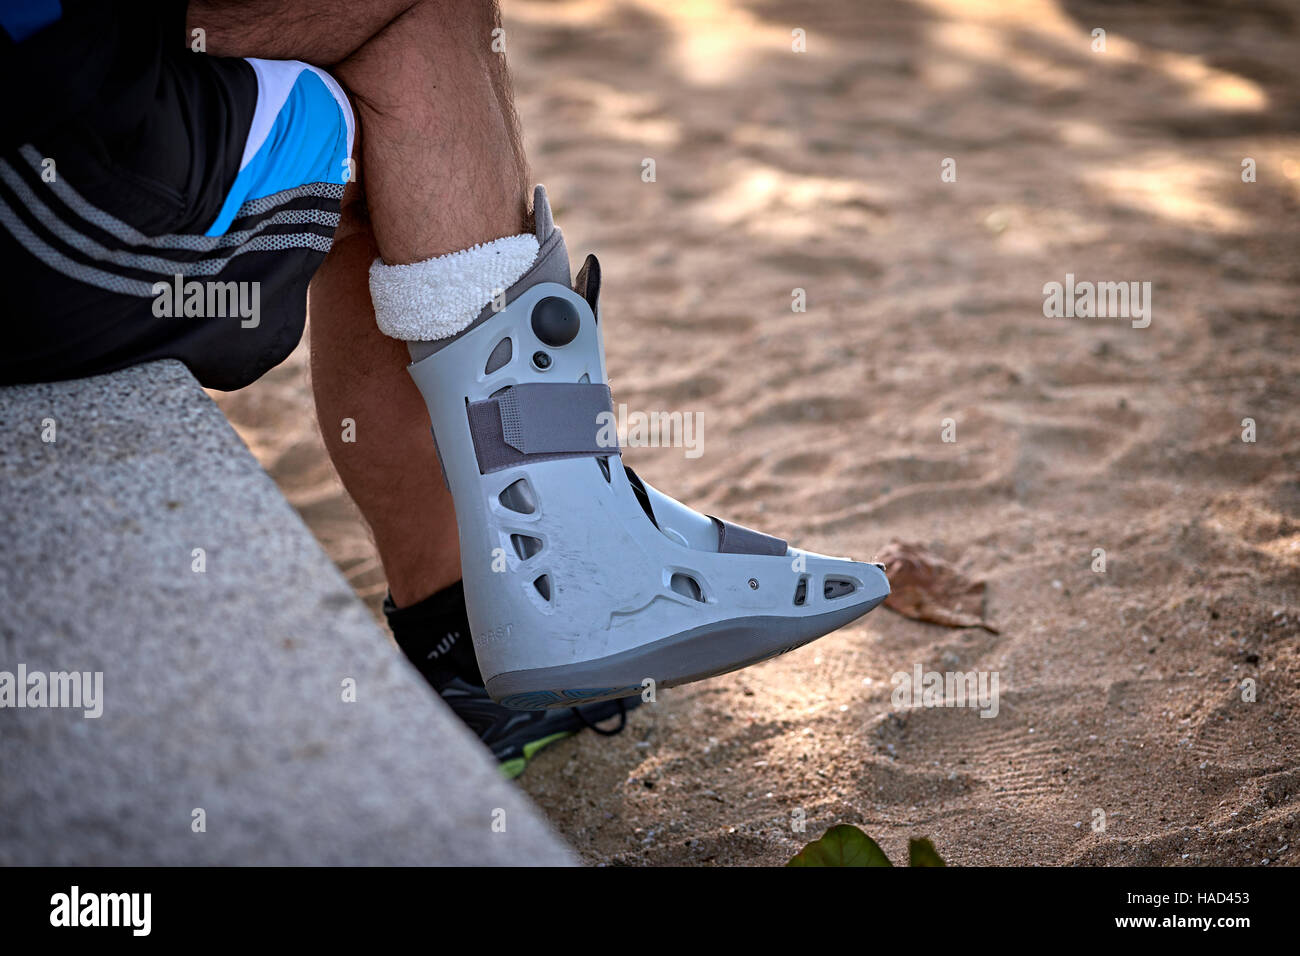 Medical support boot for foot or ankle ankle injury - Stock Image